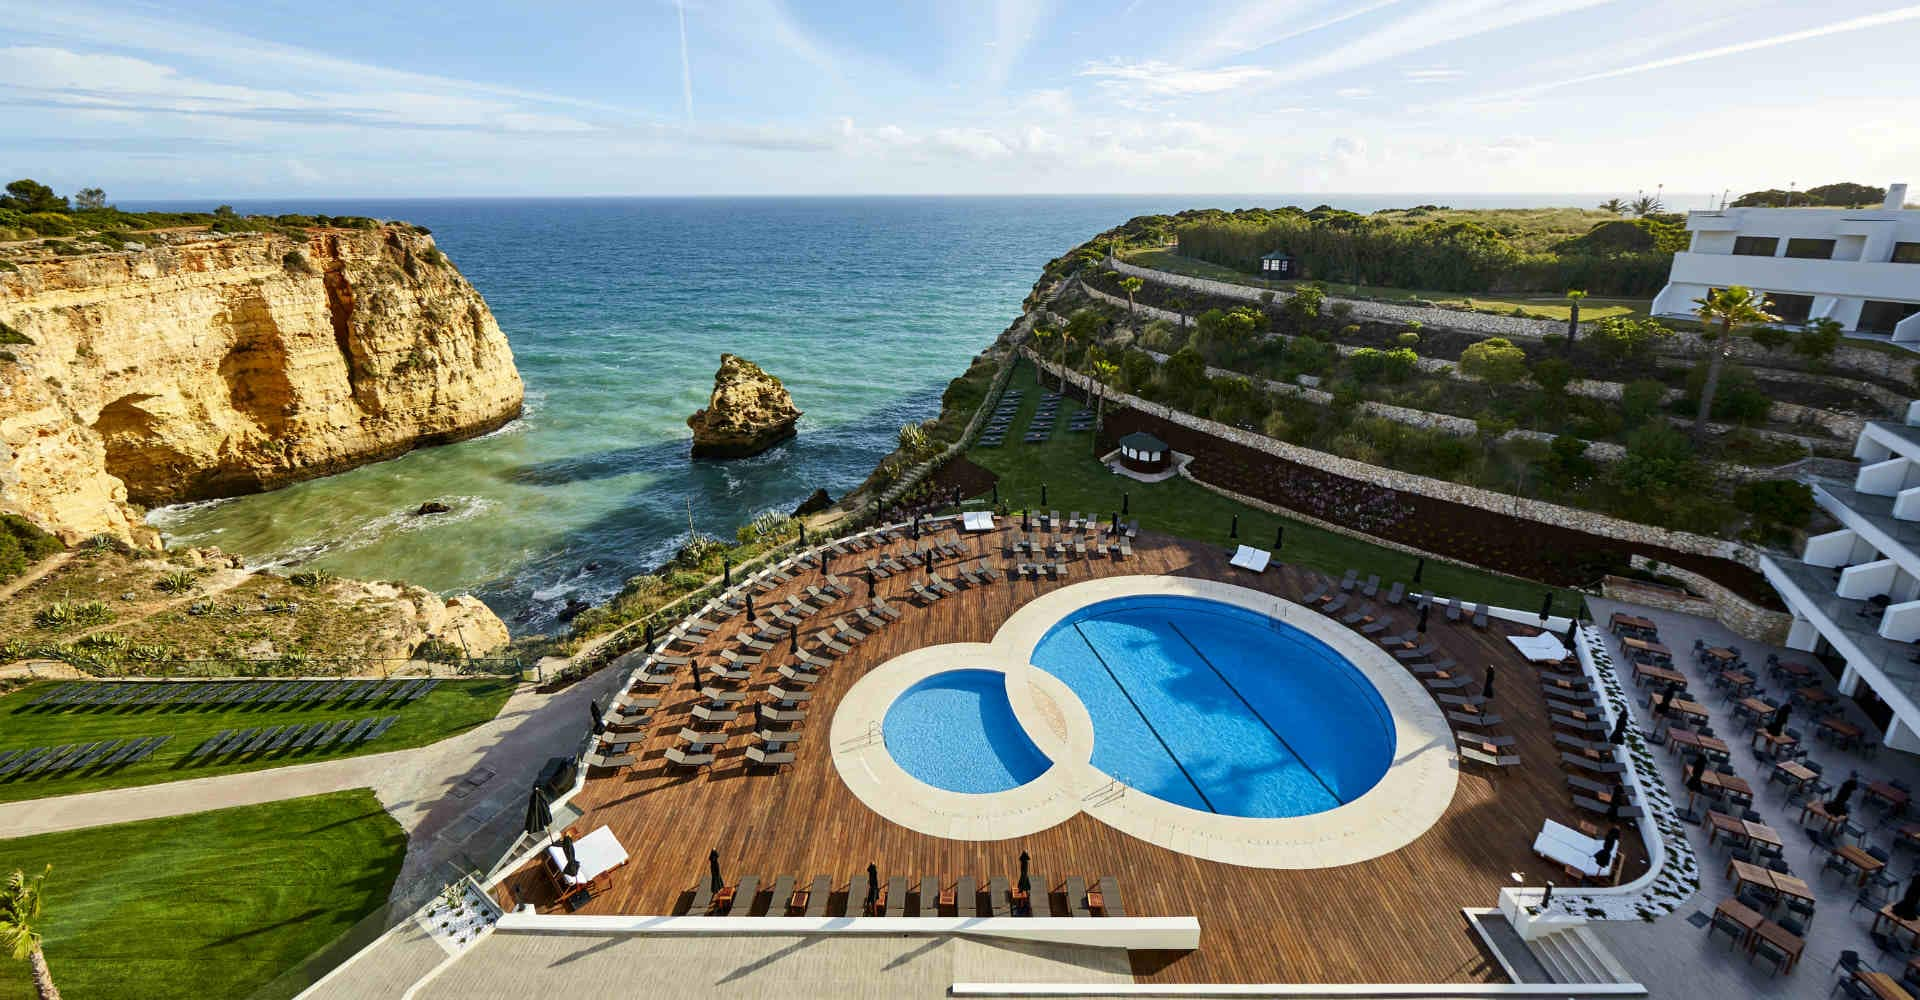 Tivoli Lagos Algarve Tivoli Hotels Resorts Official Site Book Now 10 Off